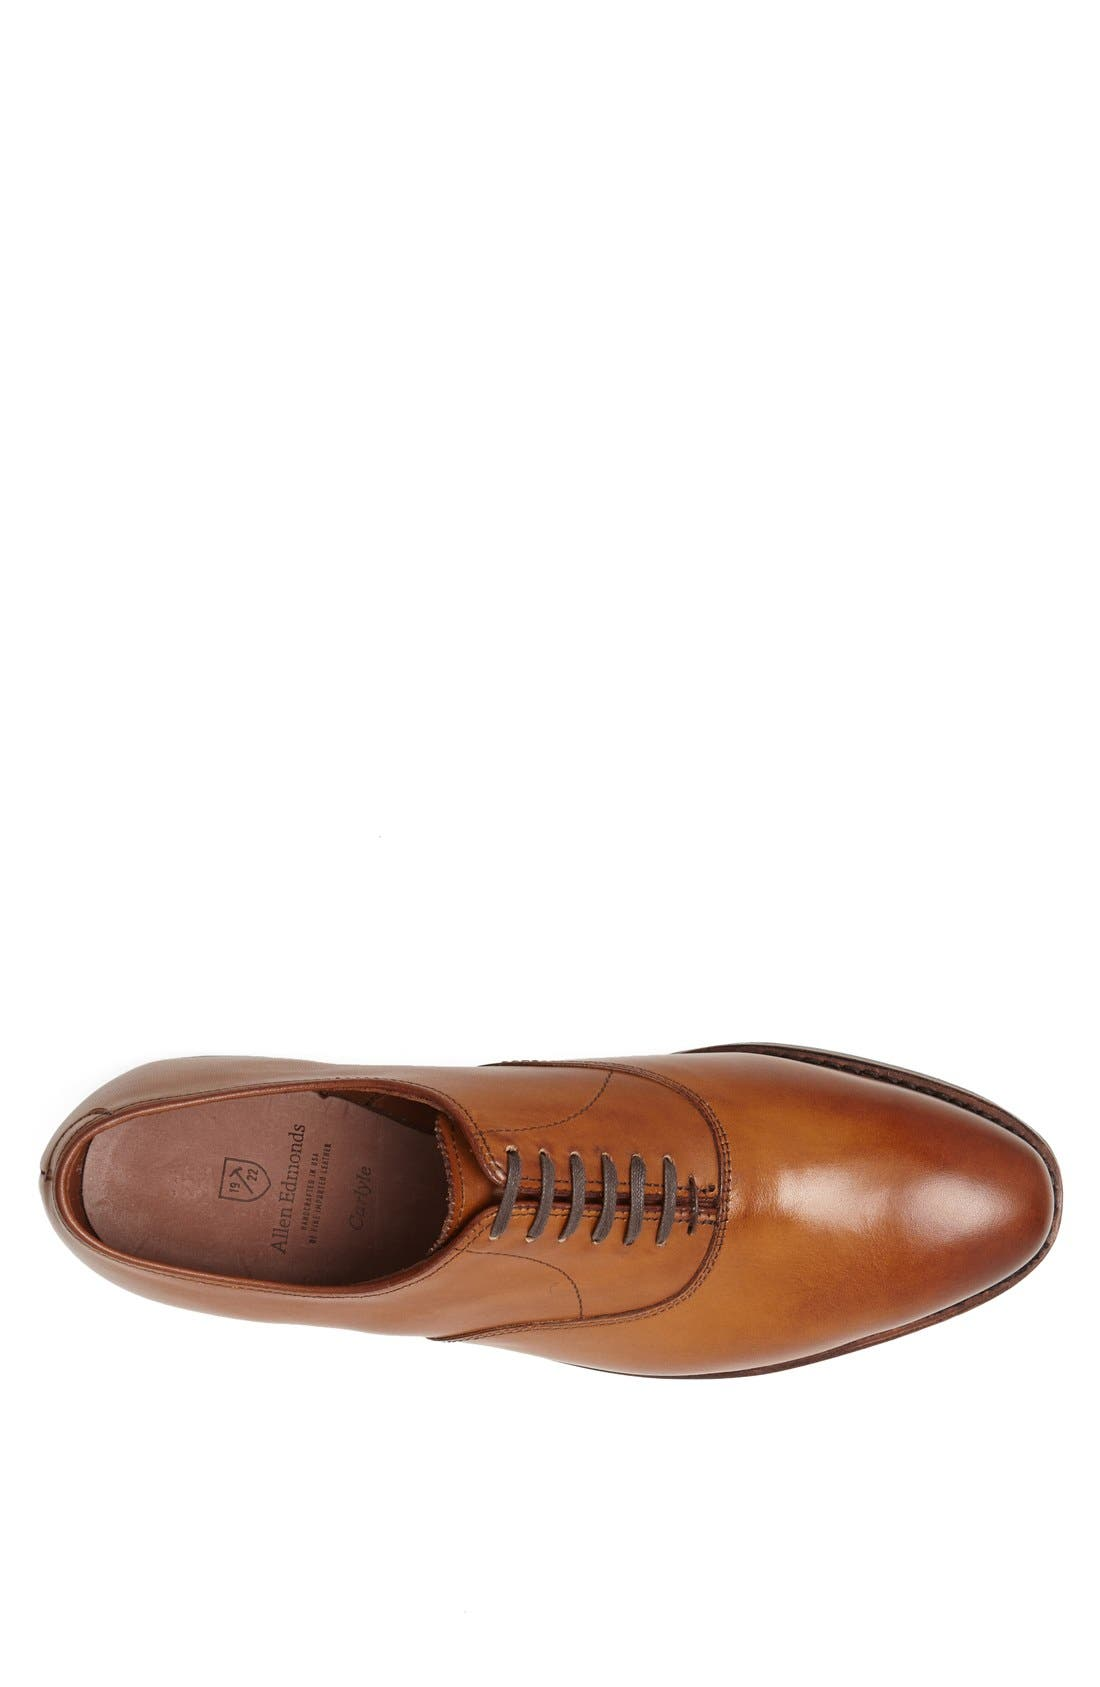 Carlyle Plain Toe Oxford,                             Alternate thumbnail 3, color,                             WALNUT LEATHER